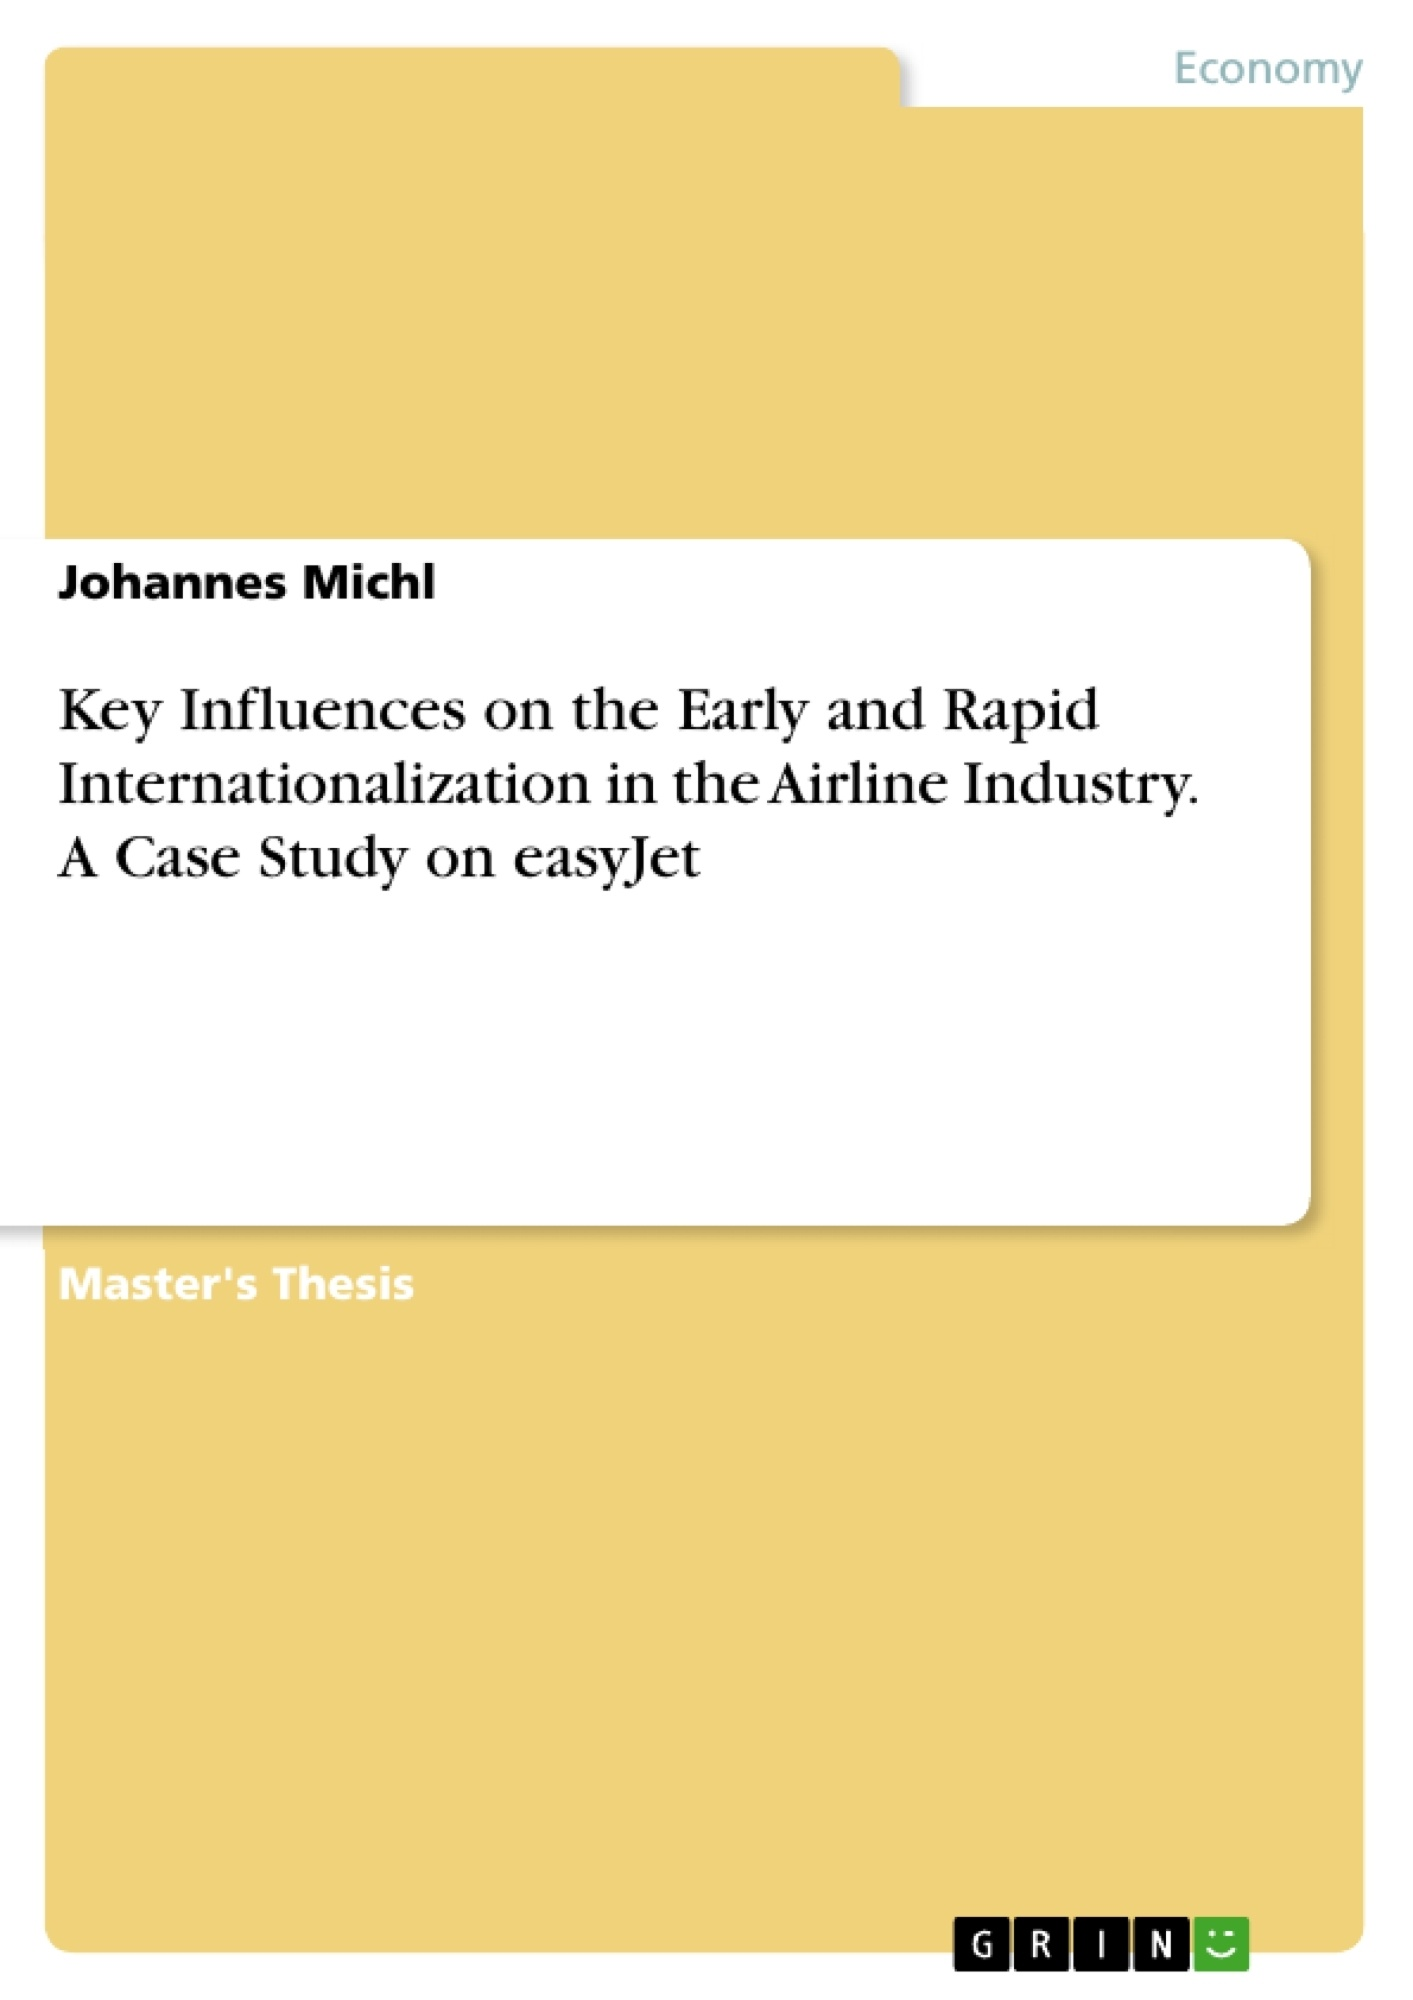 Title: Key Influences on the Early and Rapid Internationalization in the Airline Industry. A Case Study on easyJet